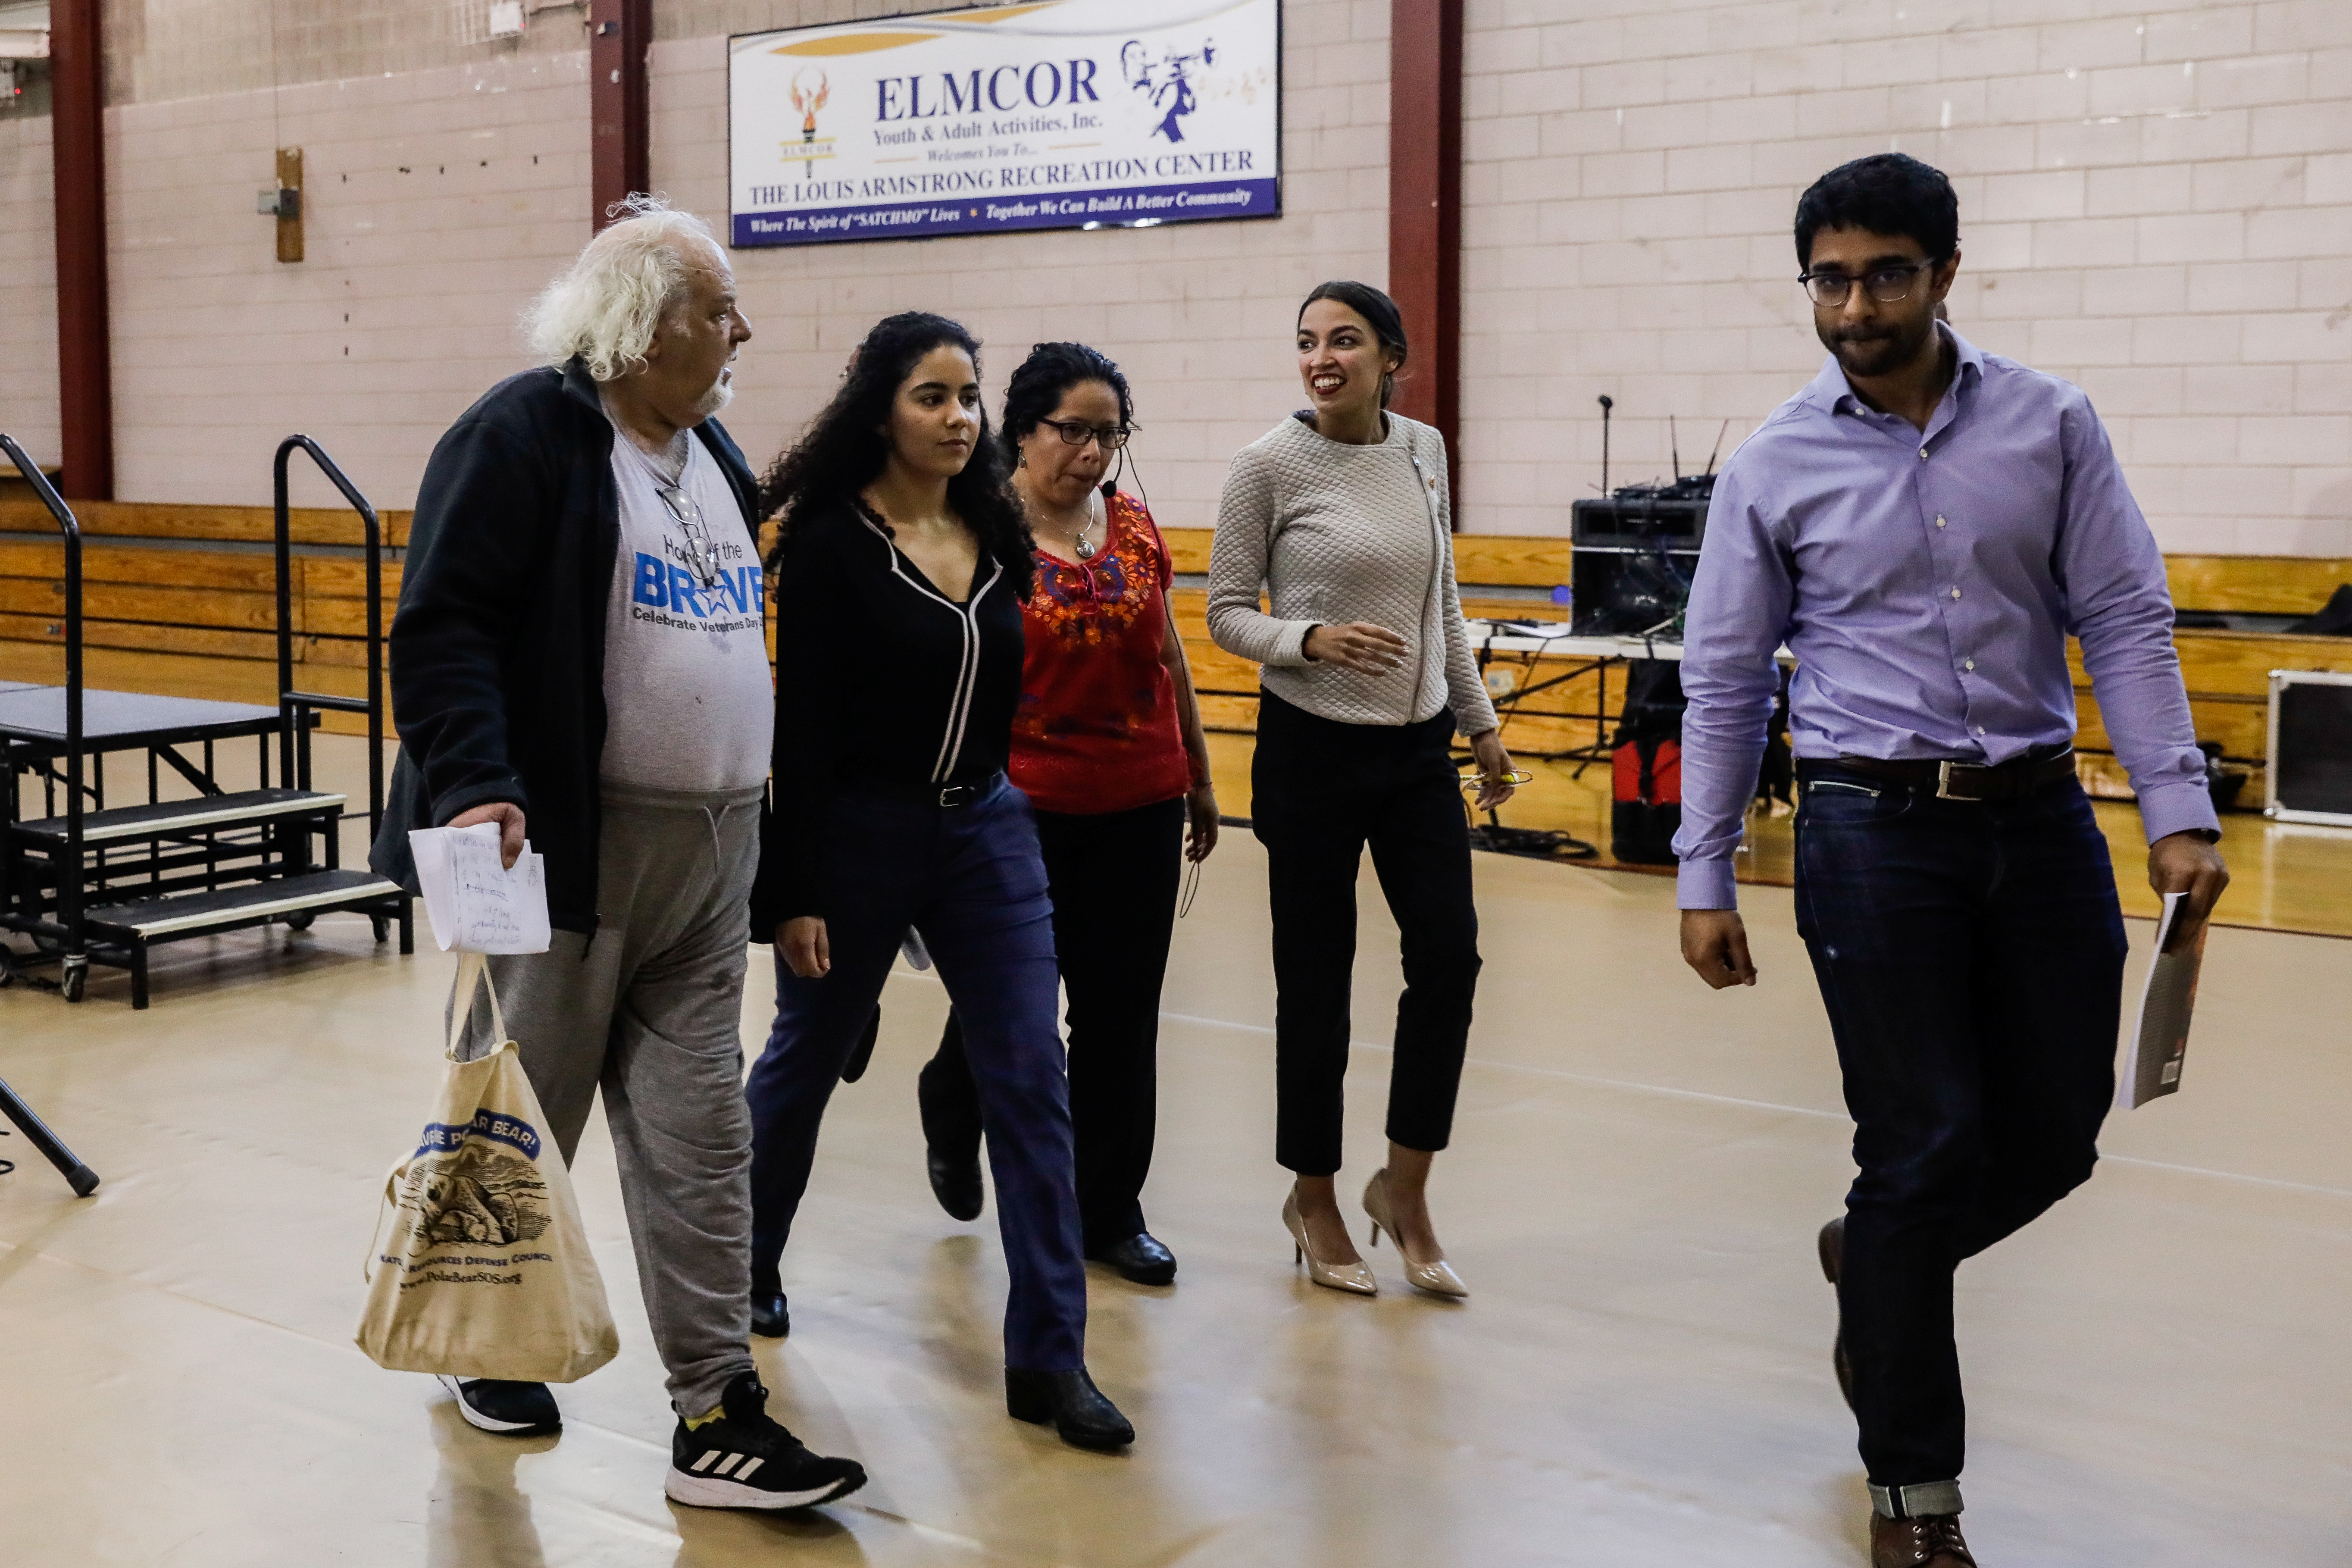 U.S. Representative Alexandria Ocasio-Cortez (D-NY) leaves after the town hall meeting in the Queens borough of New York City, New York, U.S., April 27, 2019. REUTERS/Jeenah Moon